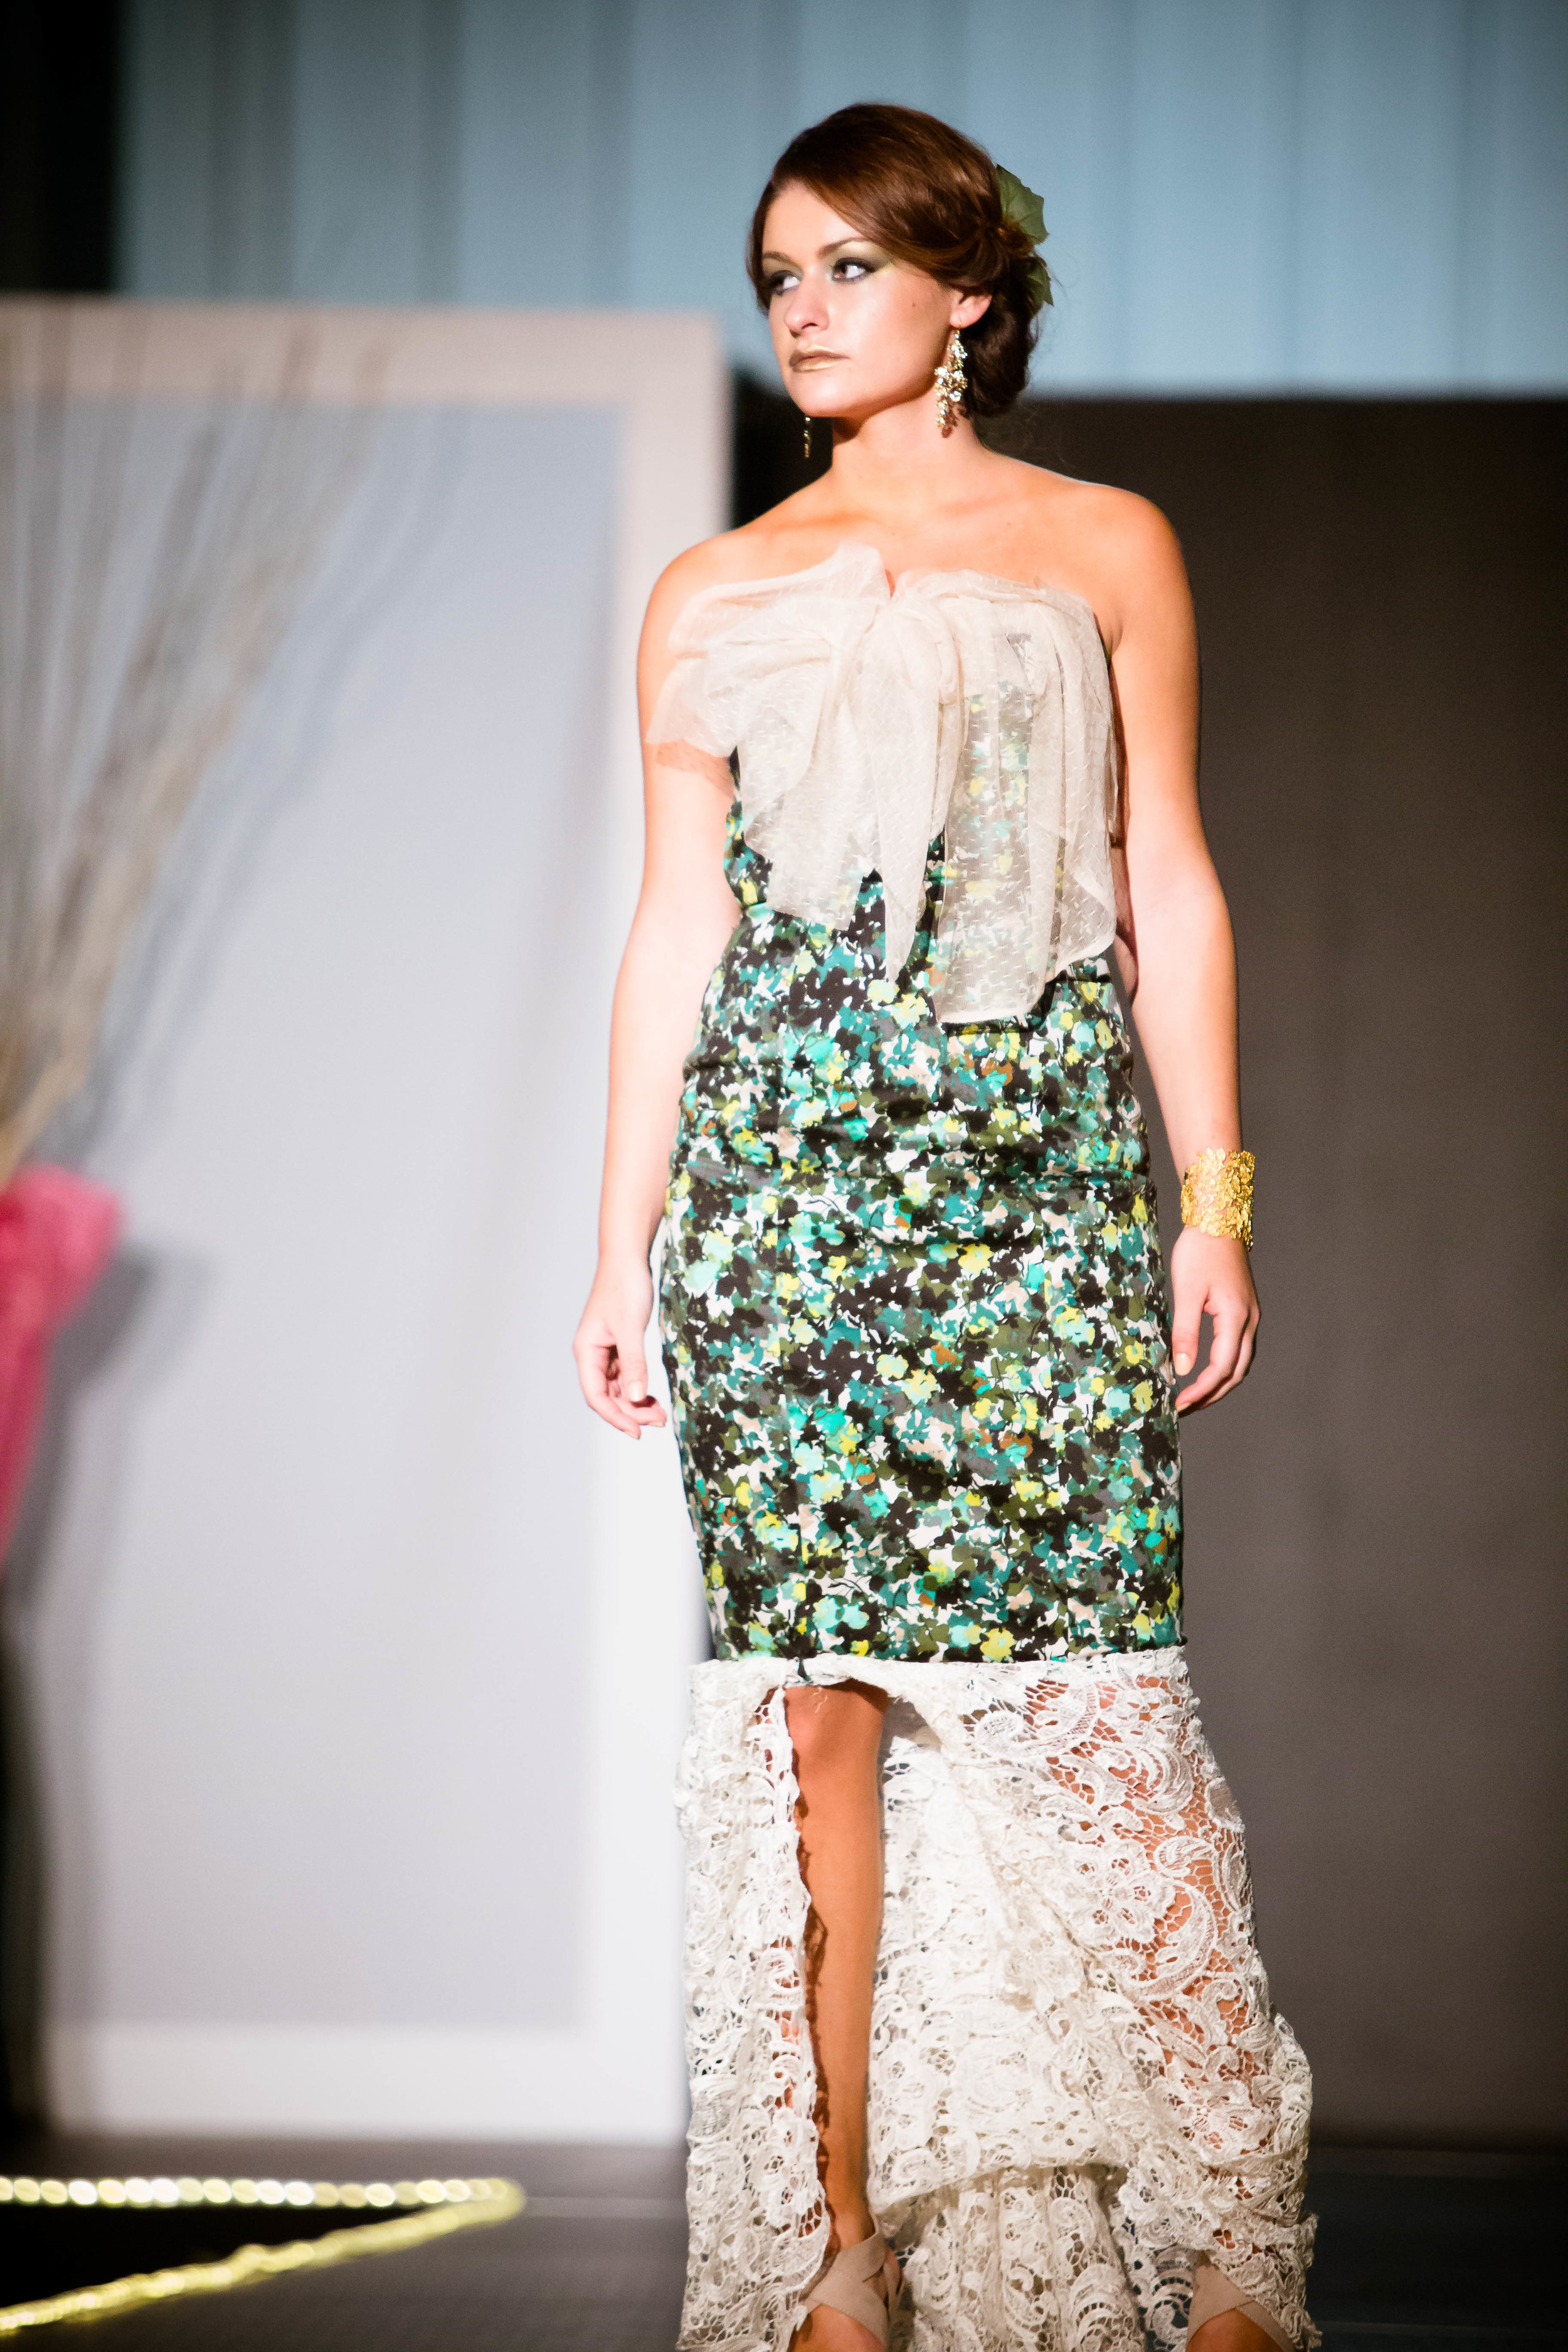 CottonCouture-142.jpg